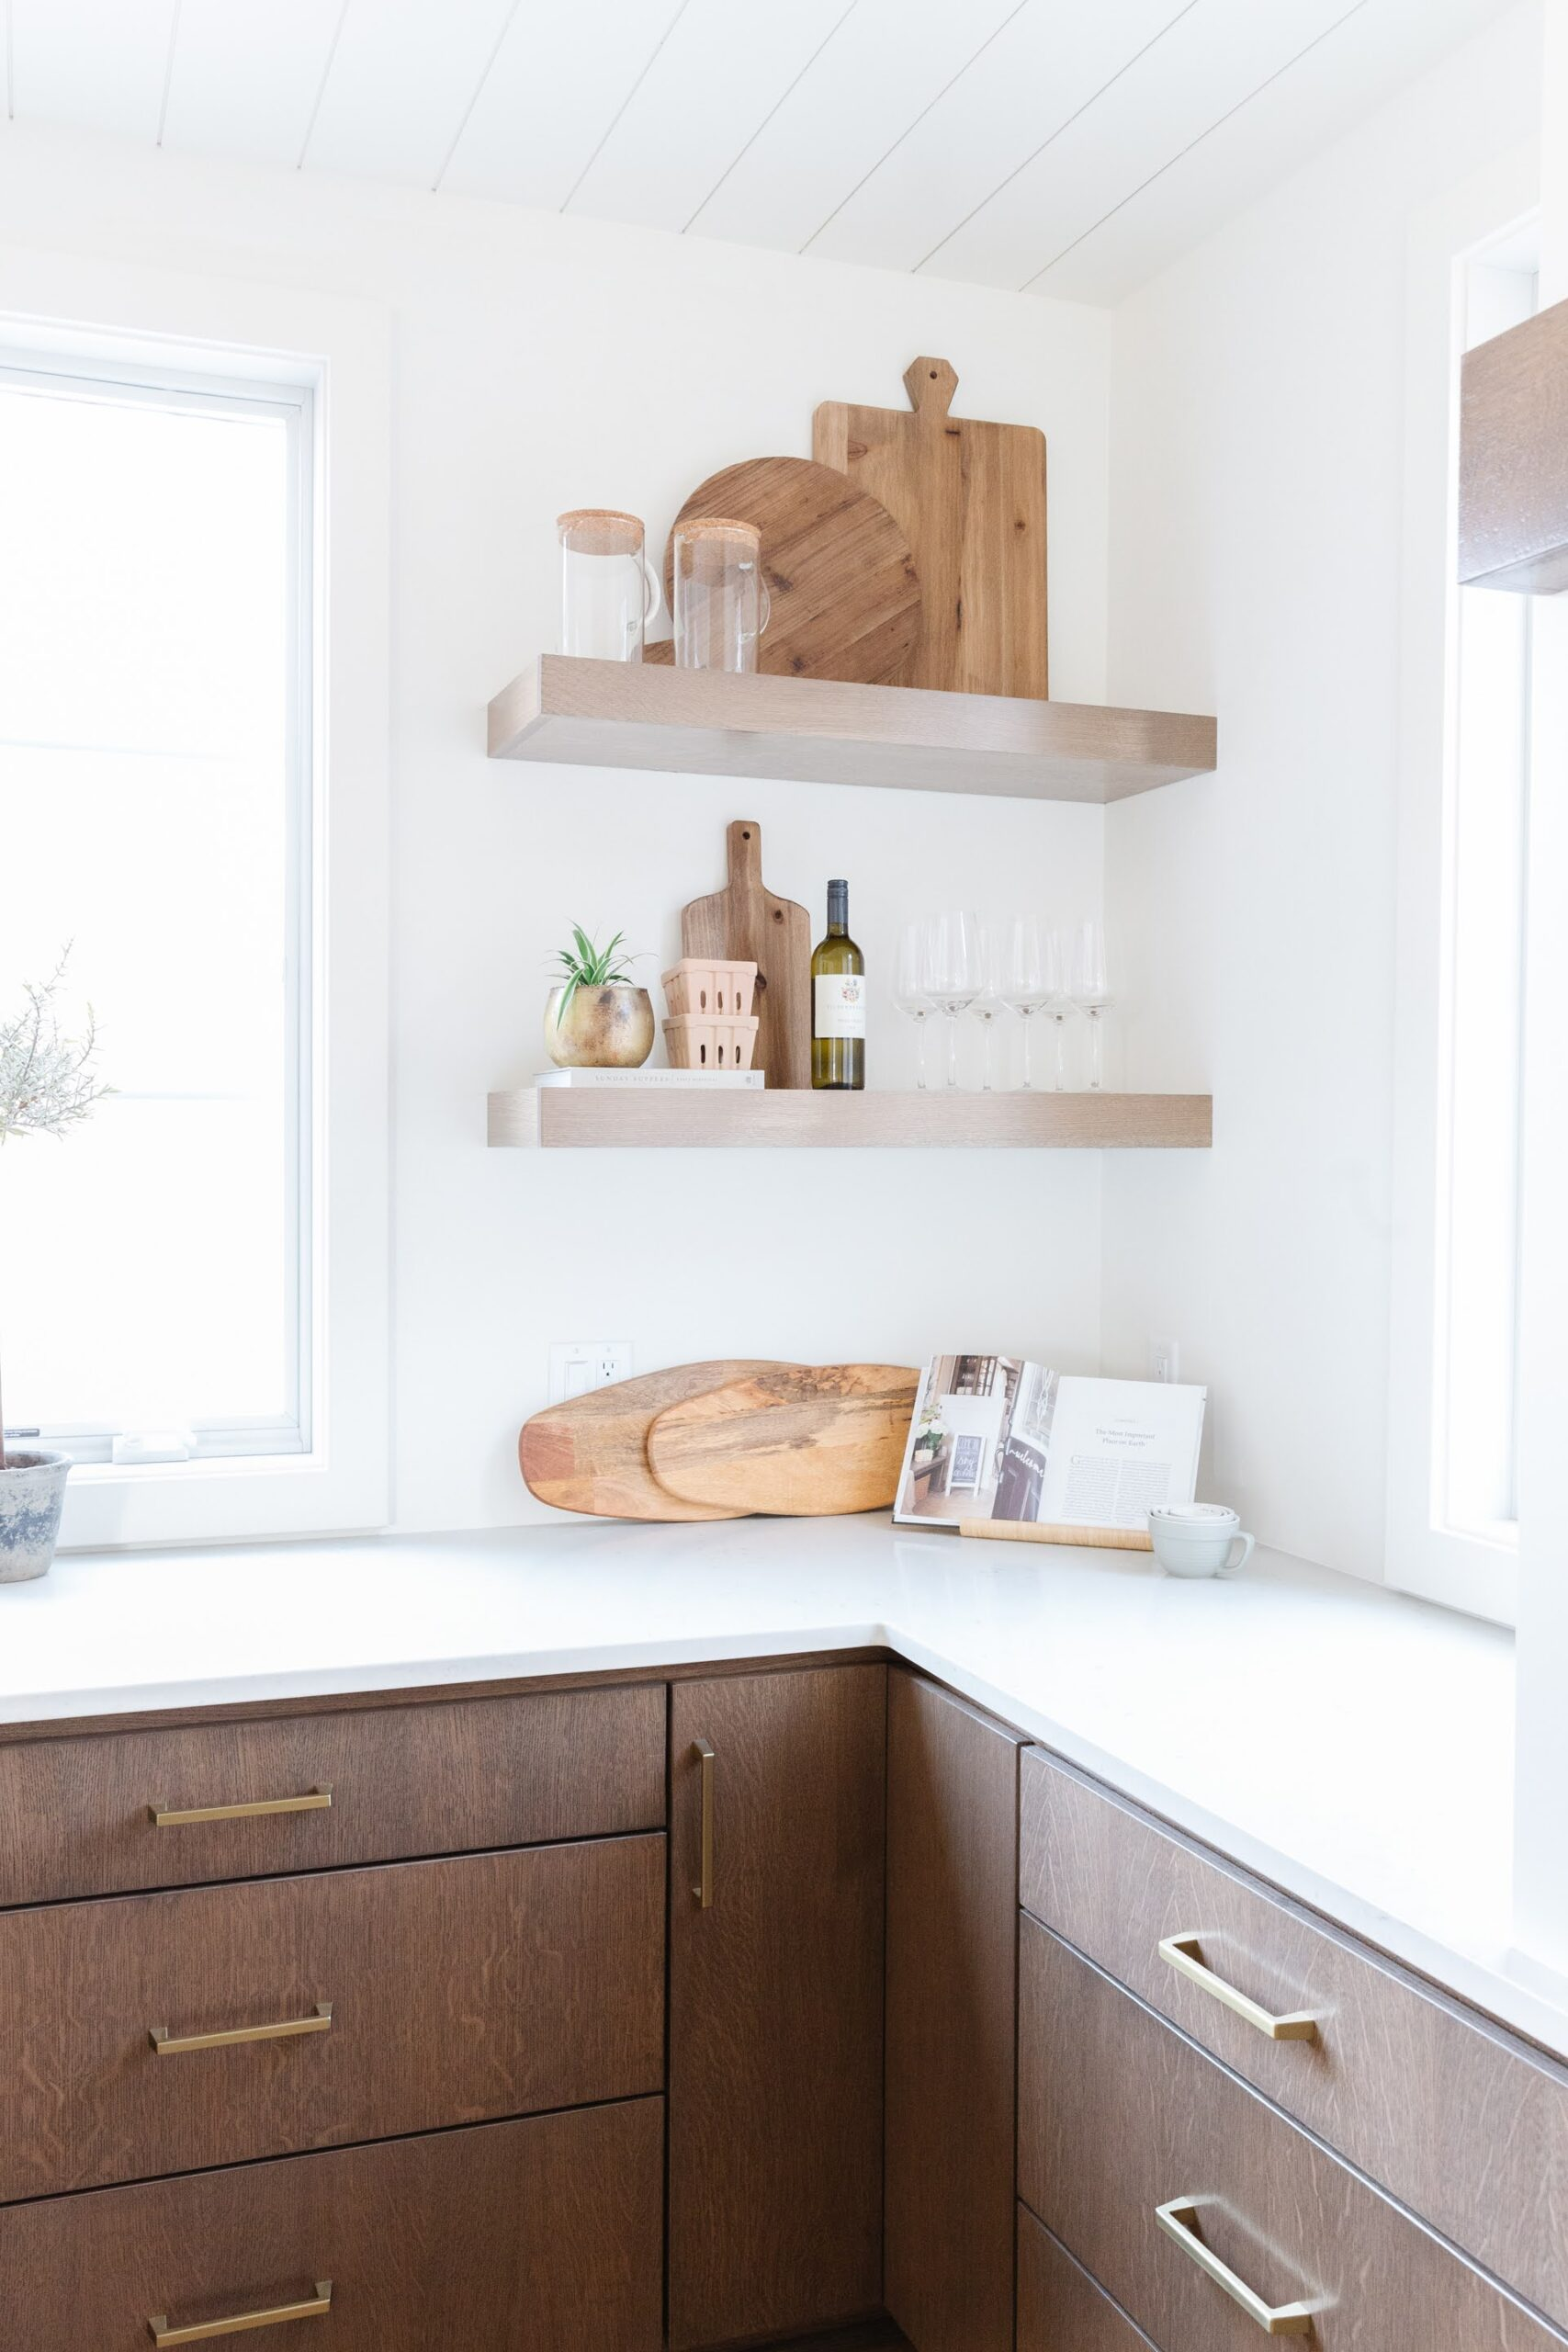 HOW TO STYLE KITCHEN OPEN SHELVES